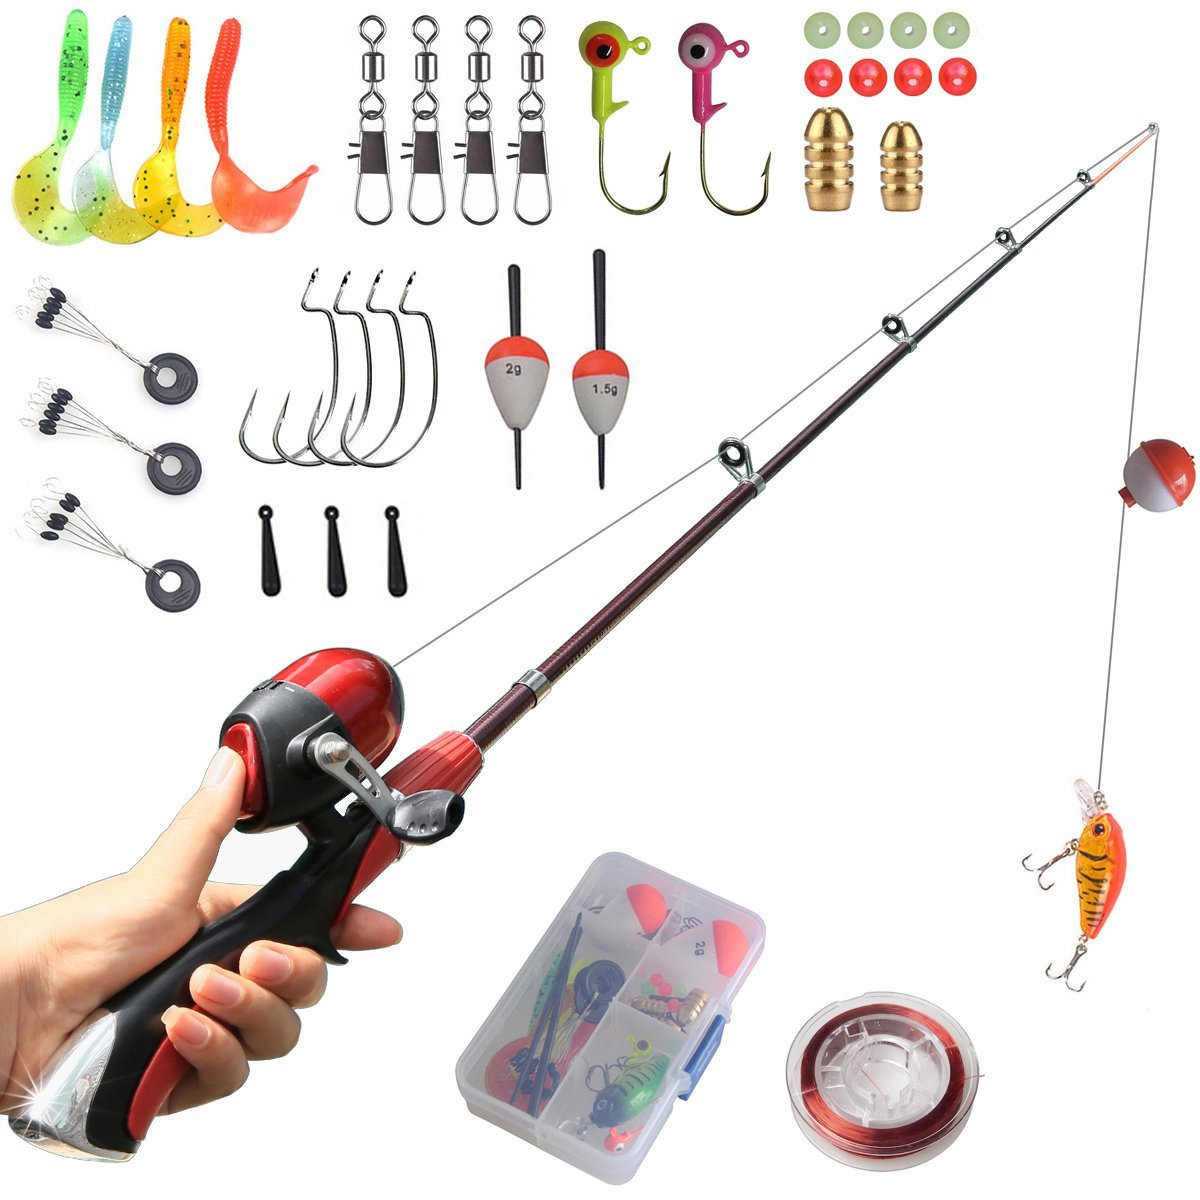 4. Kids Fishing Pole